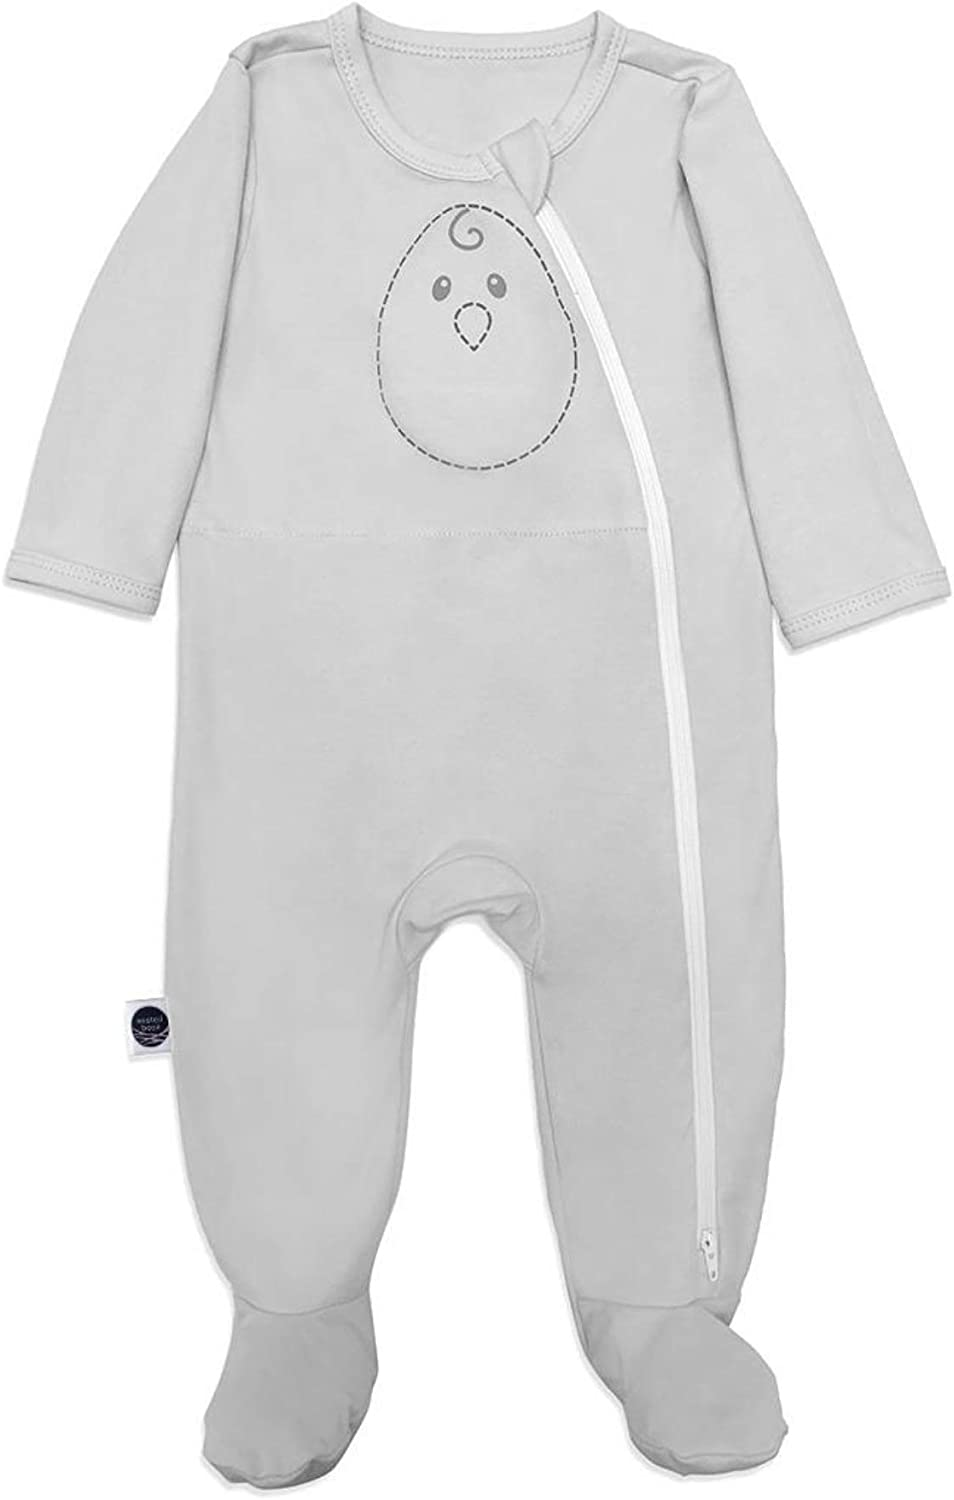 Nested Mail order cheap Bean Zen Footie PJs Weighted Baby: Gently - Phoenix Mall 3-9